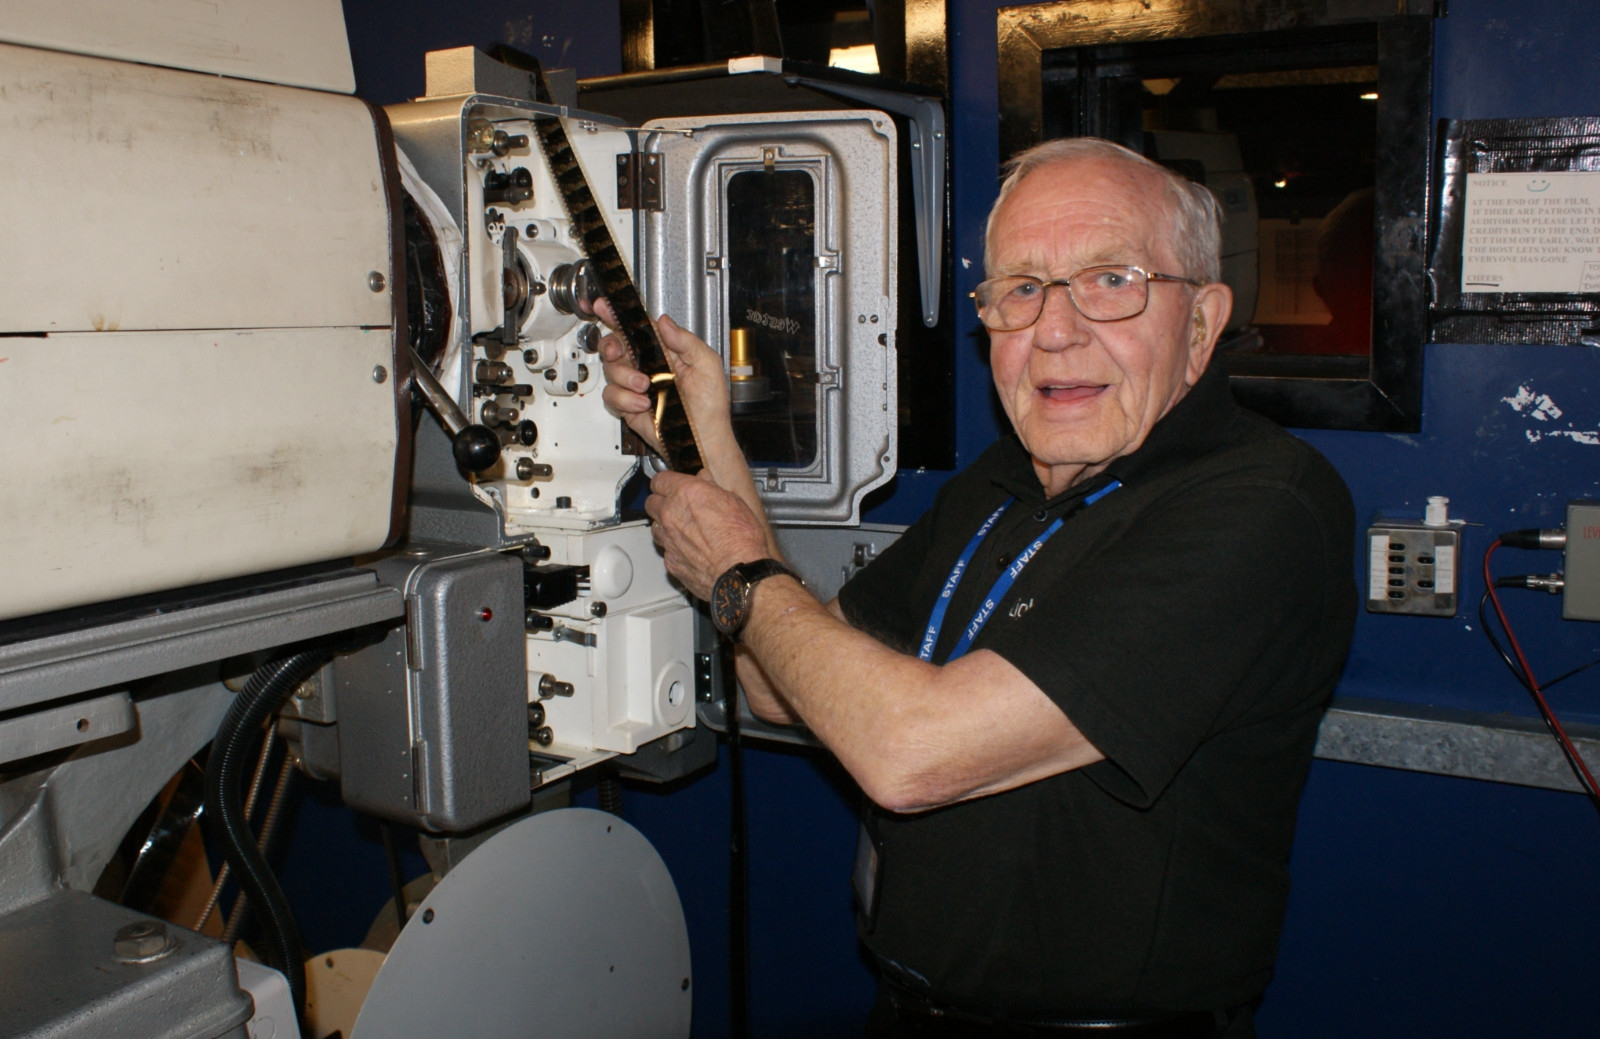 Is John, 82, Britain's oldest cinema projectionist?